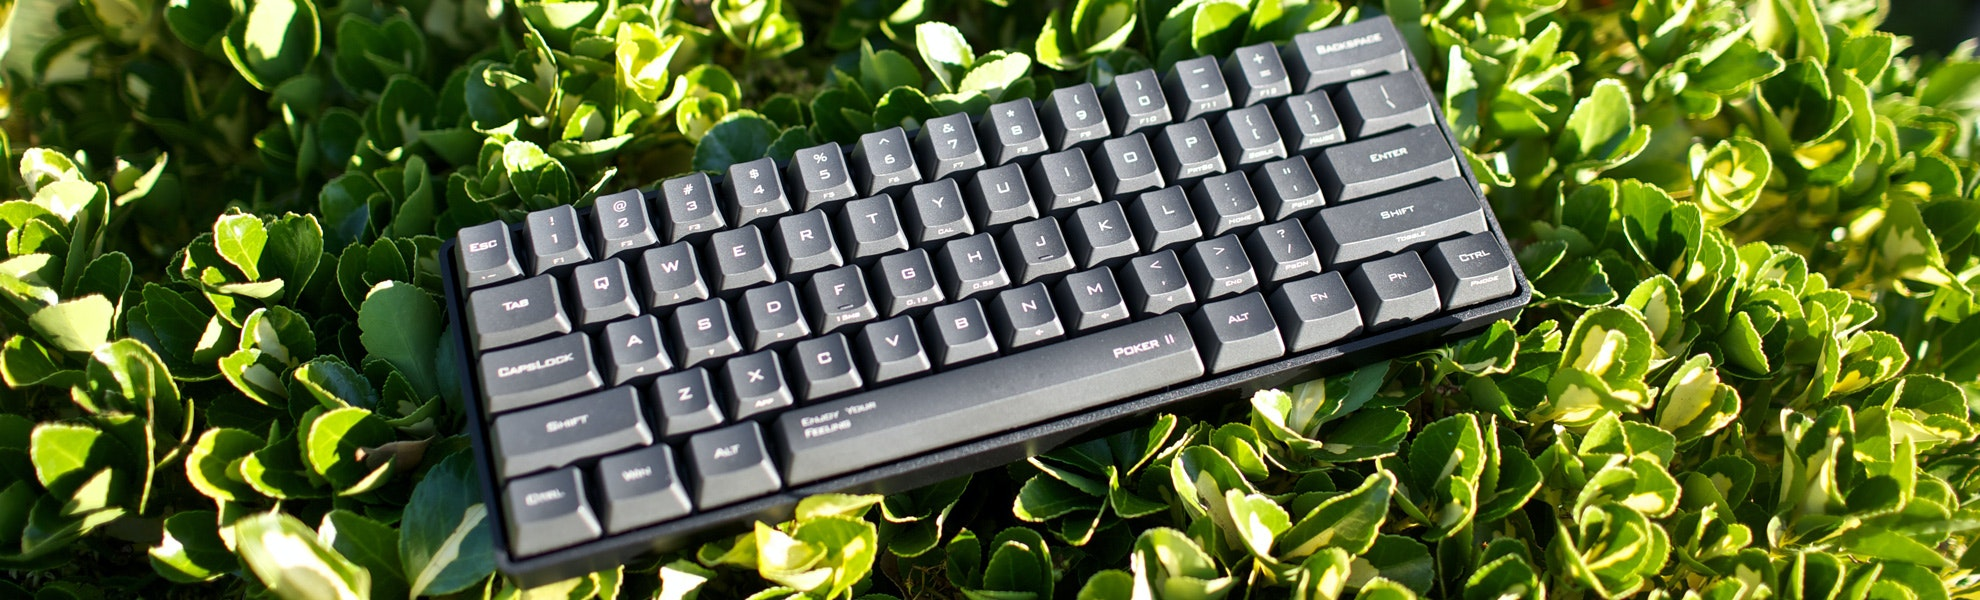 Vortex Poker II Mechanical Keyboard